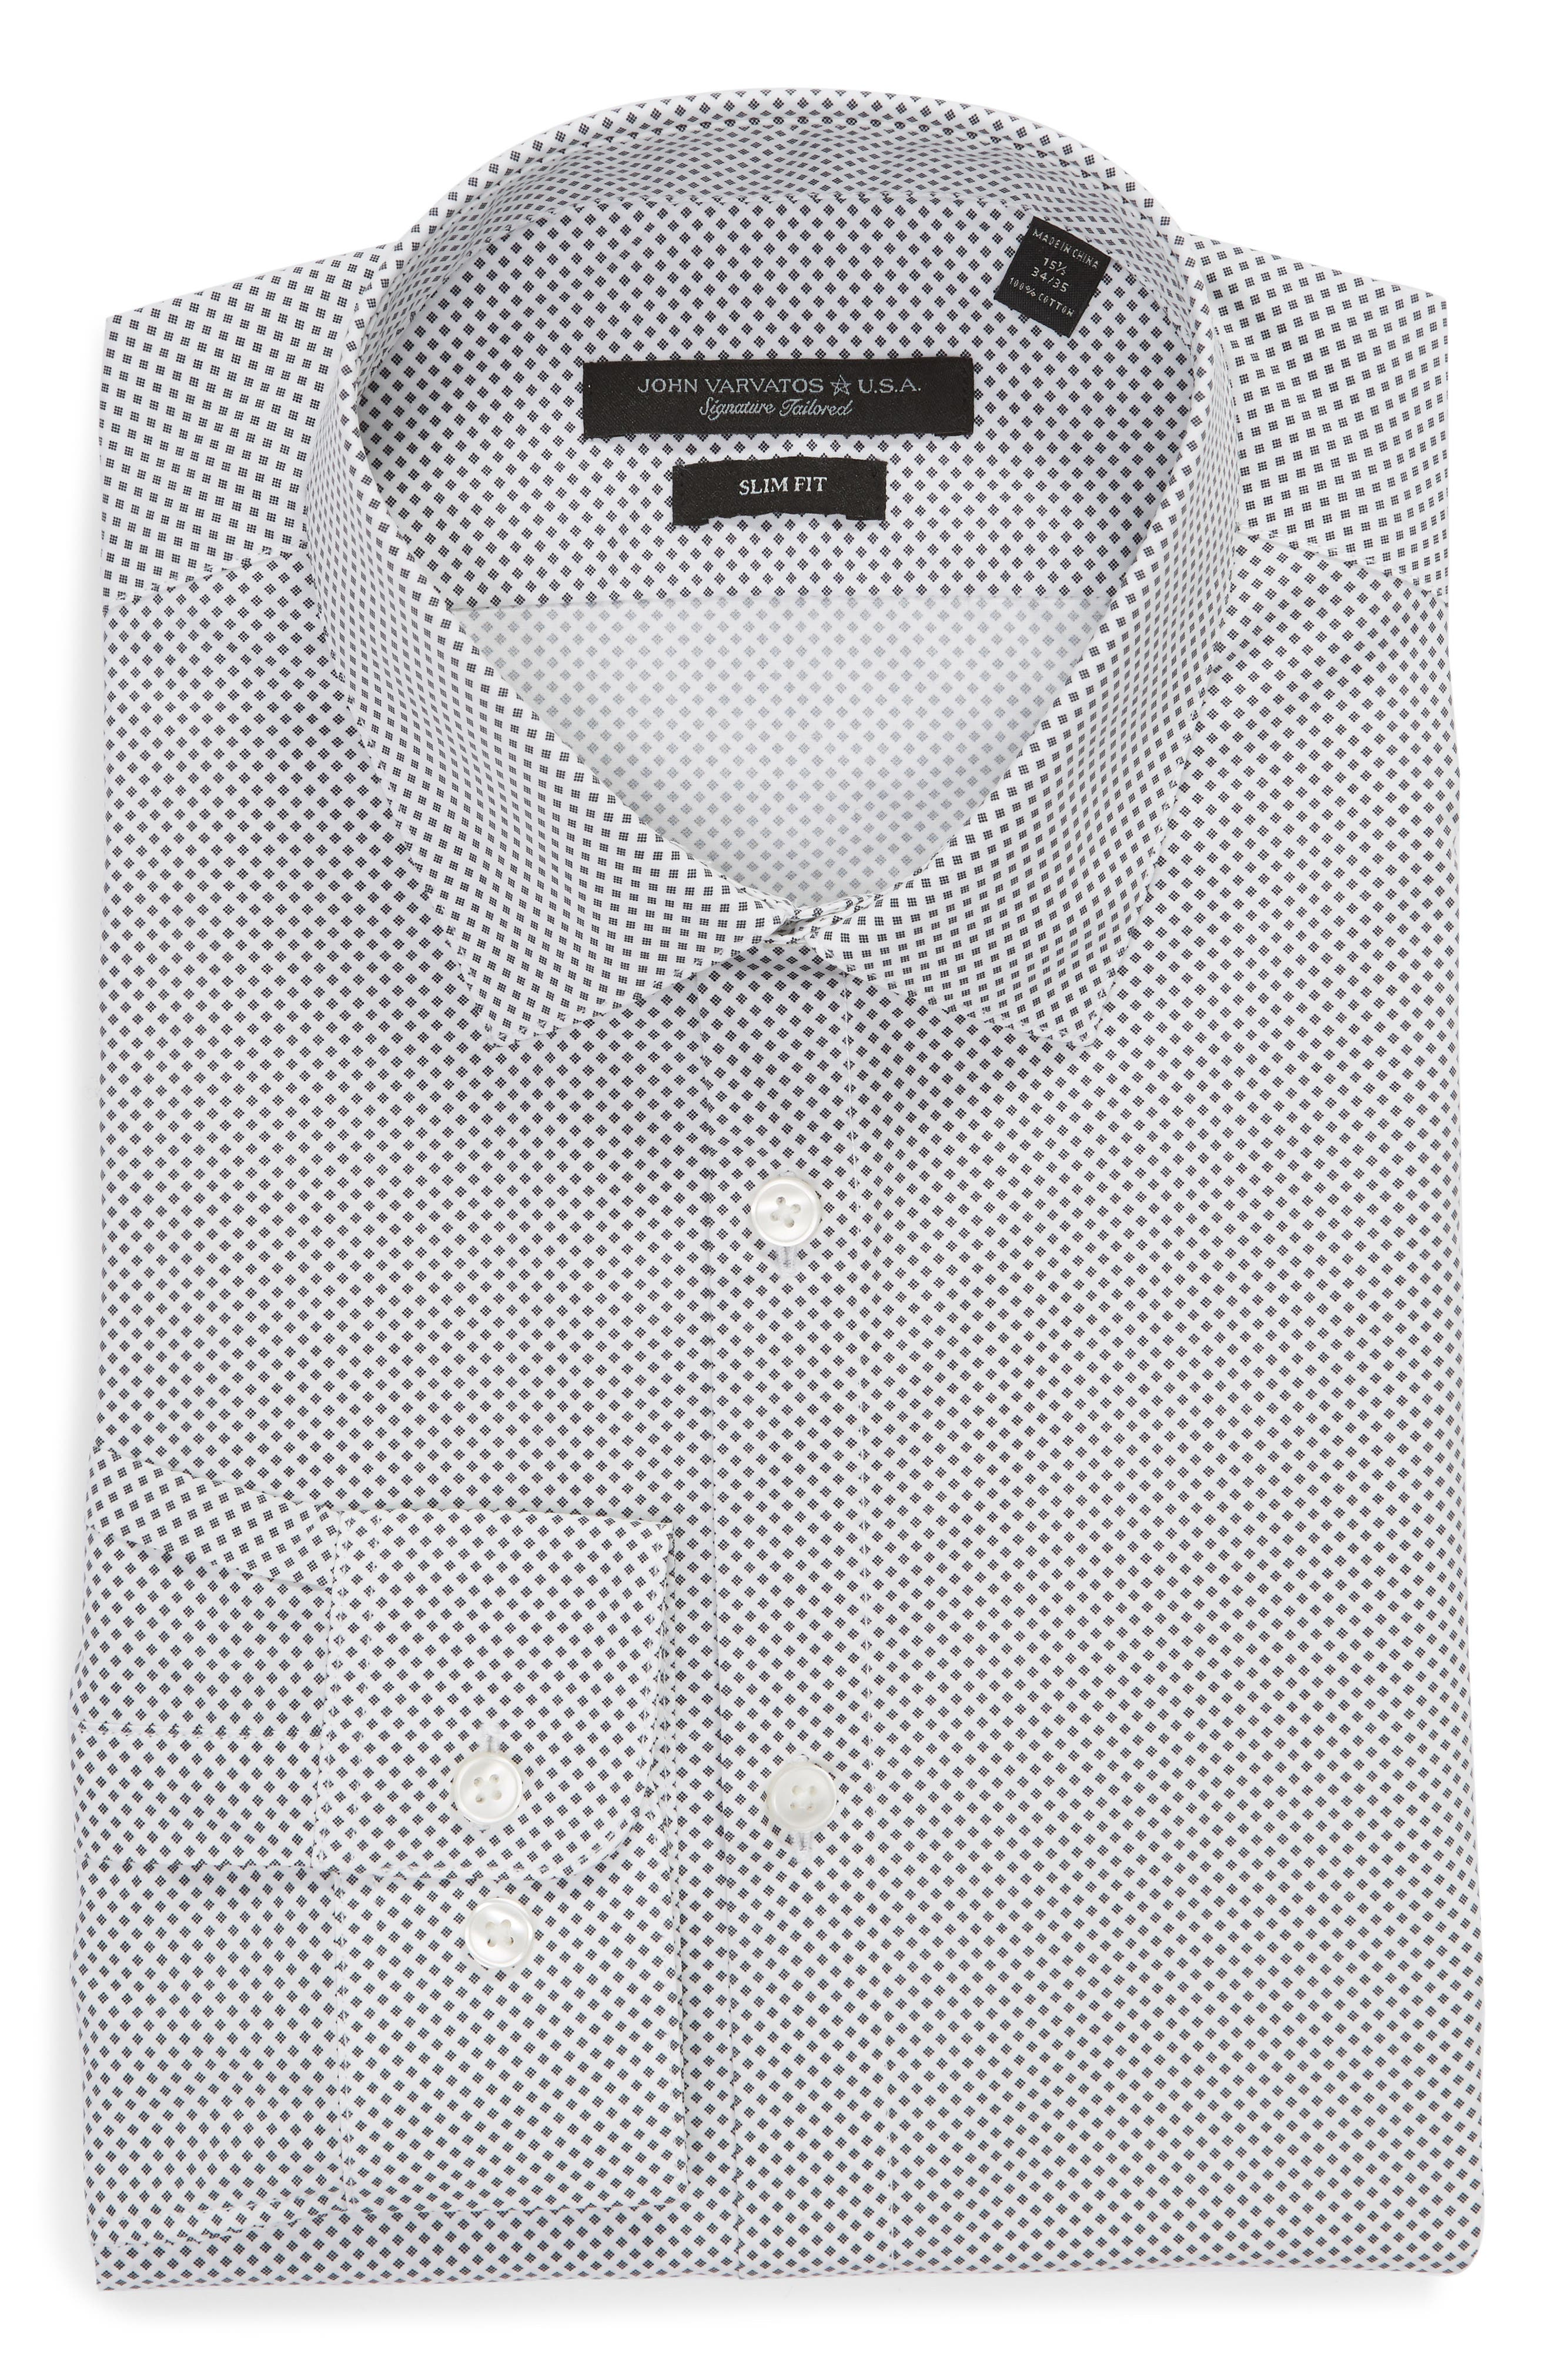 JOHN VARVATOS STAR USA, Slim Fit Print Dress Shirt, Alternate thumbnail 5, color, THUNDER GREY